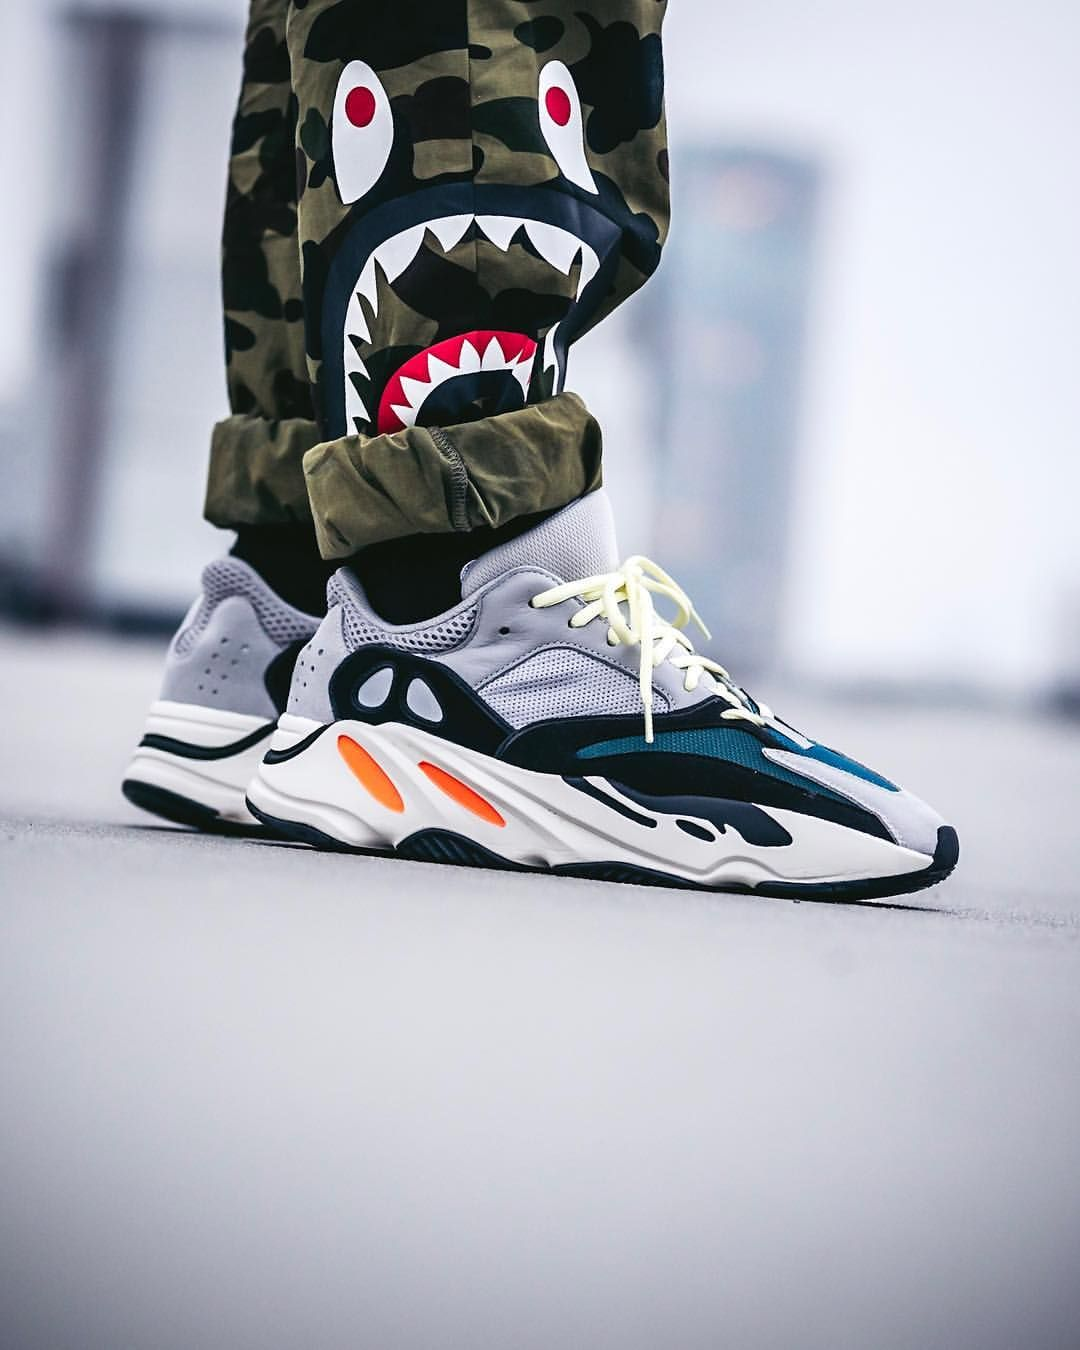 the latest dd2bf 4fedc adidas Yeezy Wave Runner | Serenede | Sneakers in 2019 | Dad ...